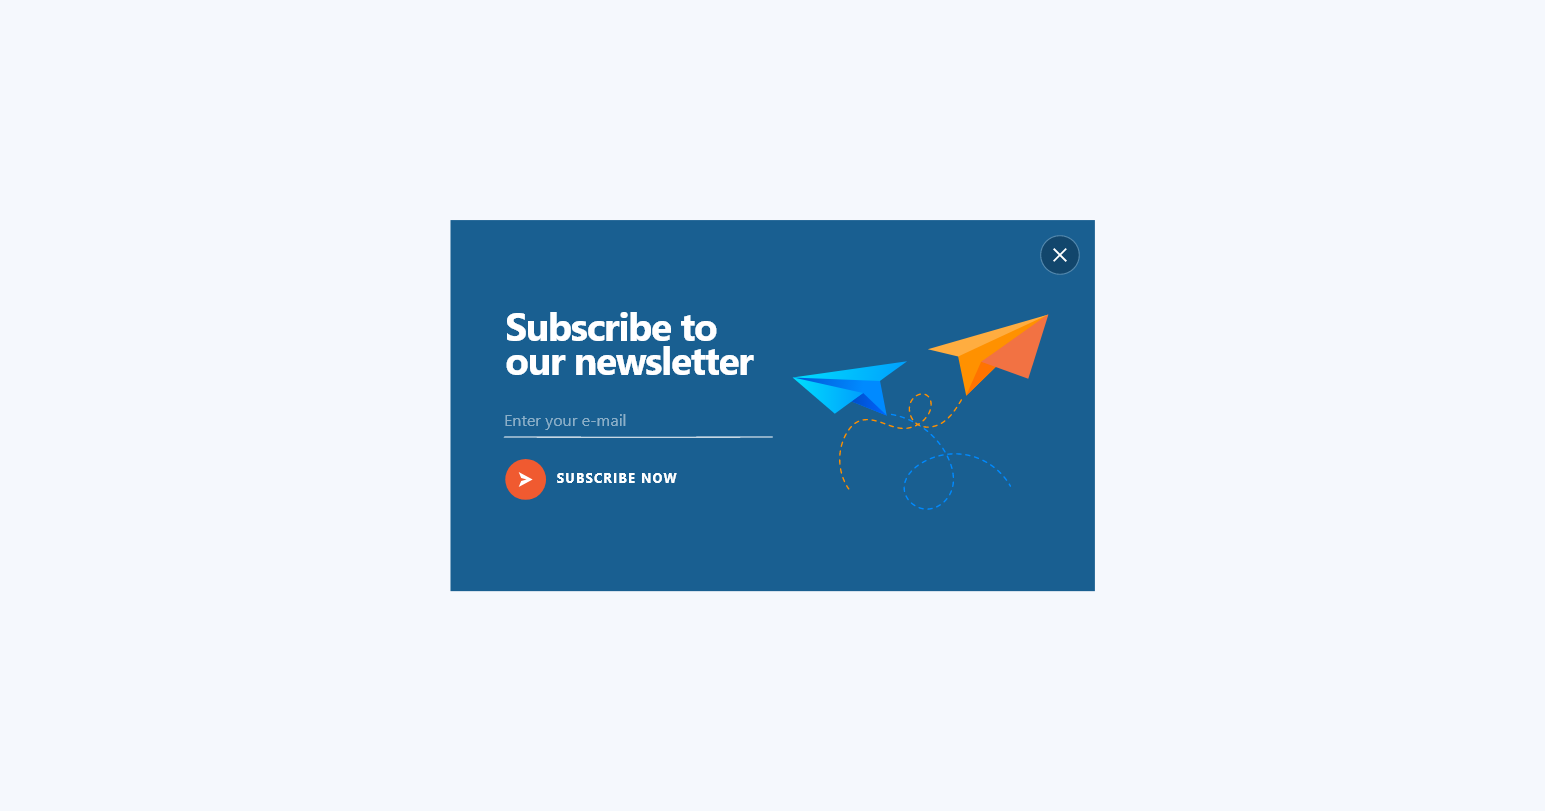 popupsmart-content-newsletter-subscribe-blue-middle-popup-design